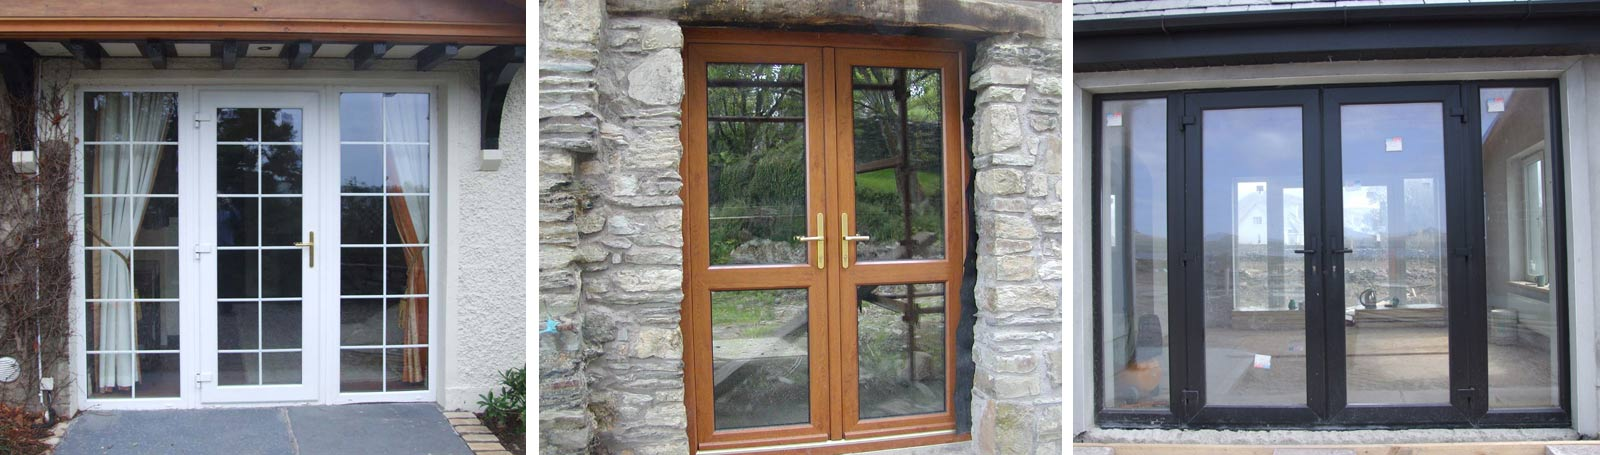 French Doors – pvc French doors